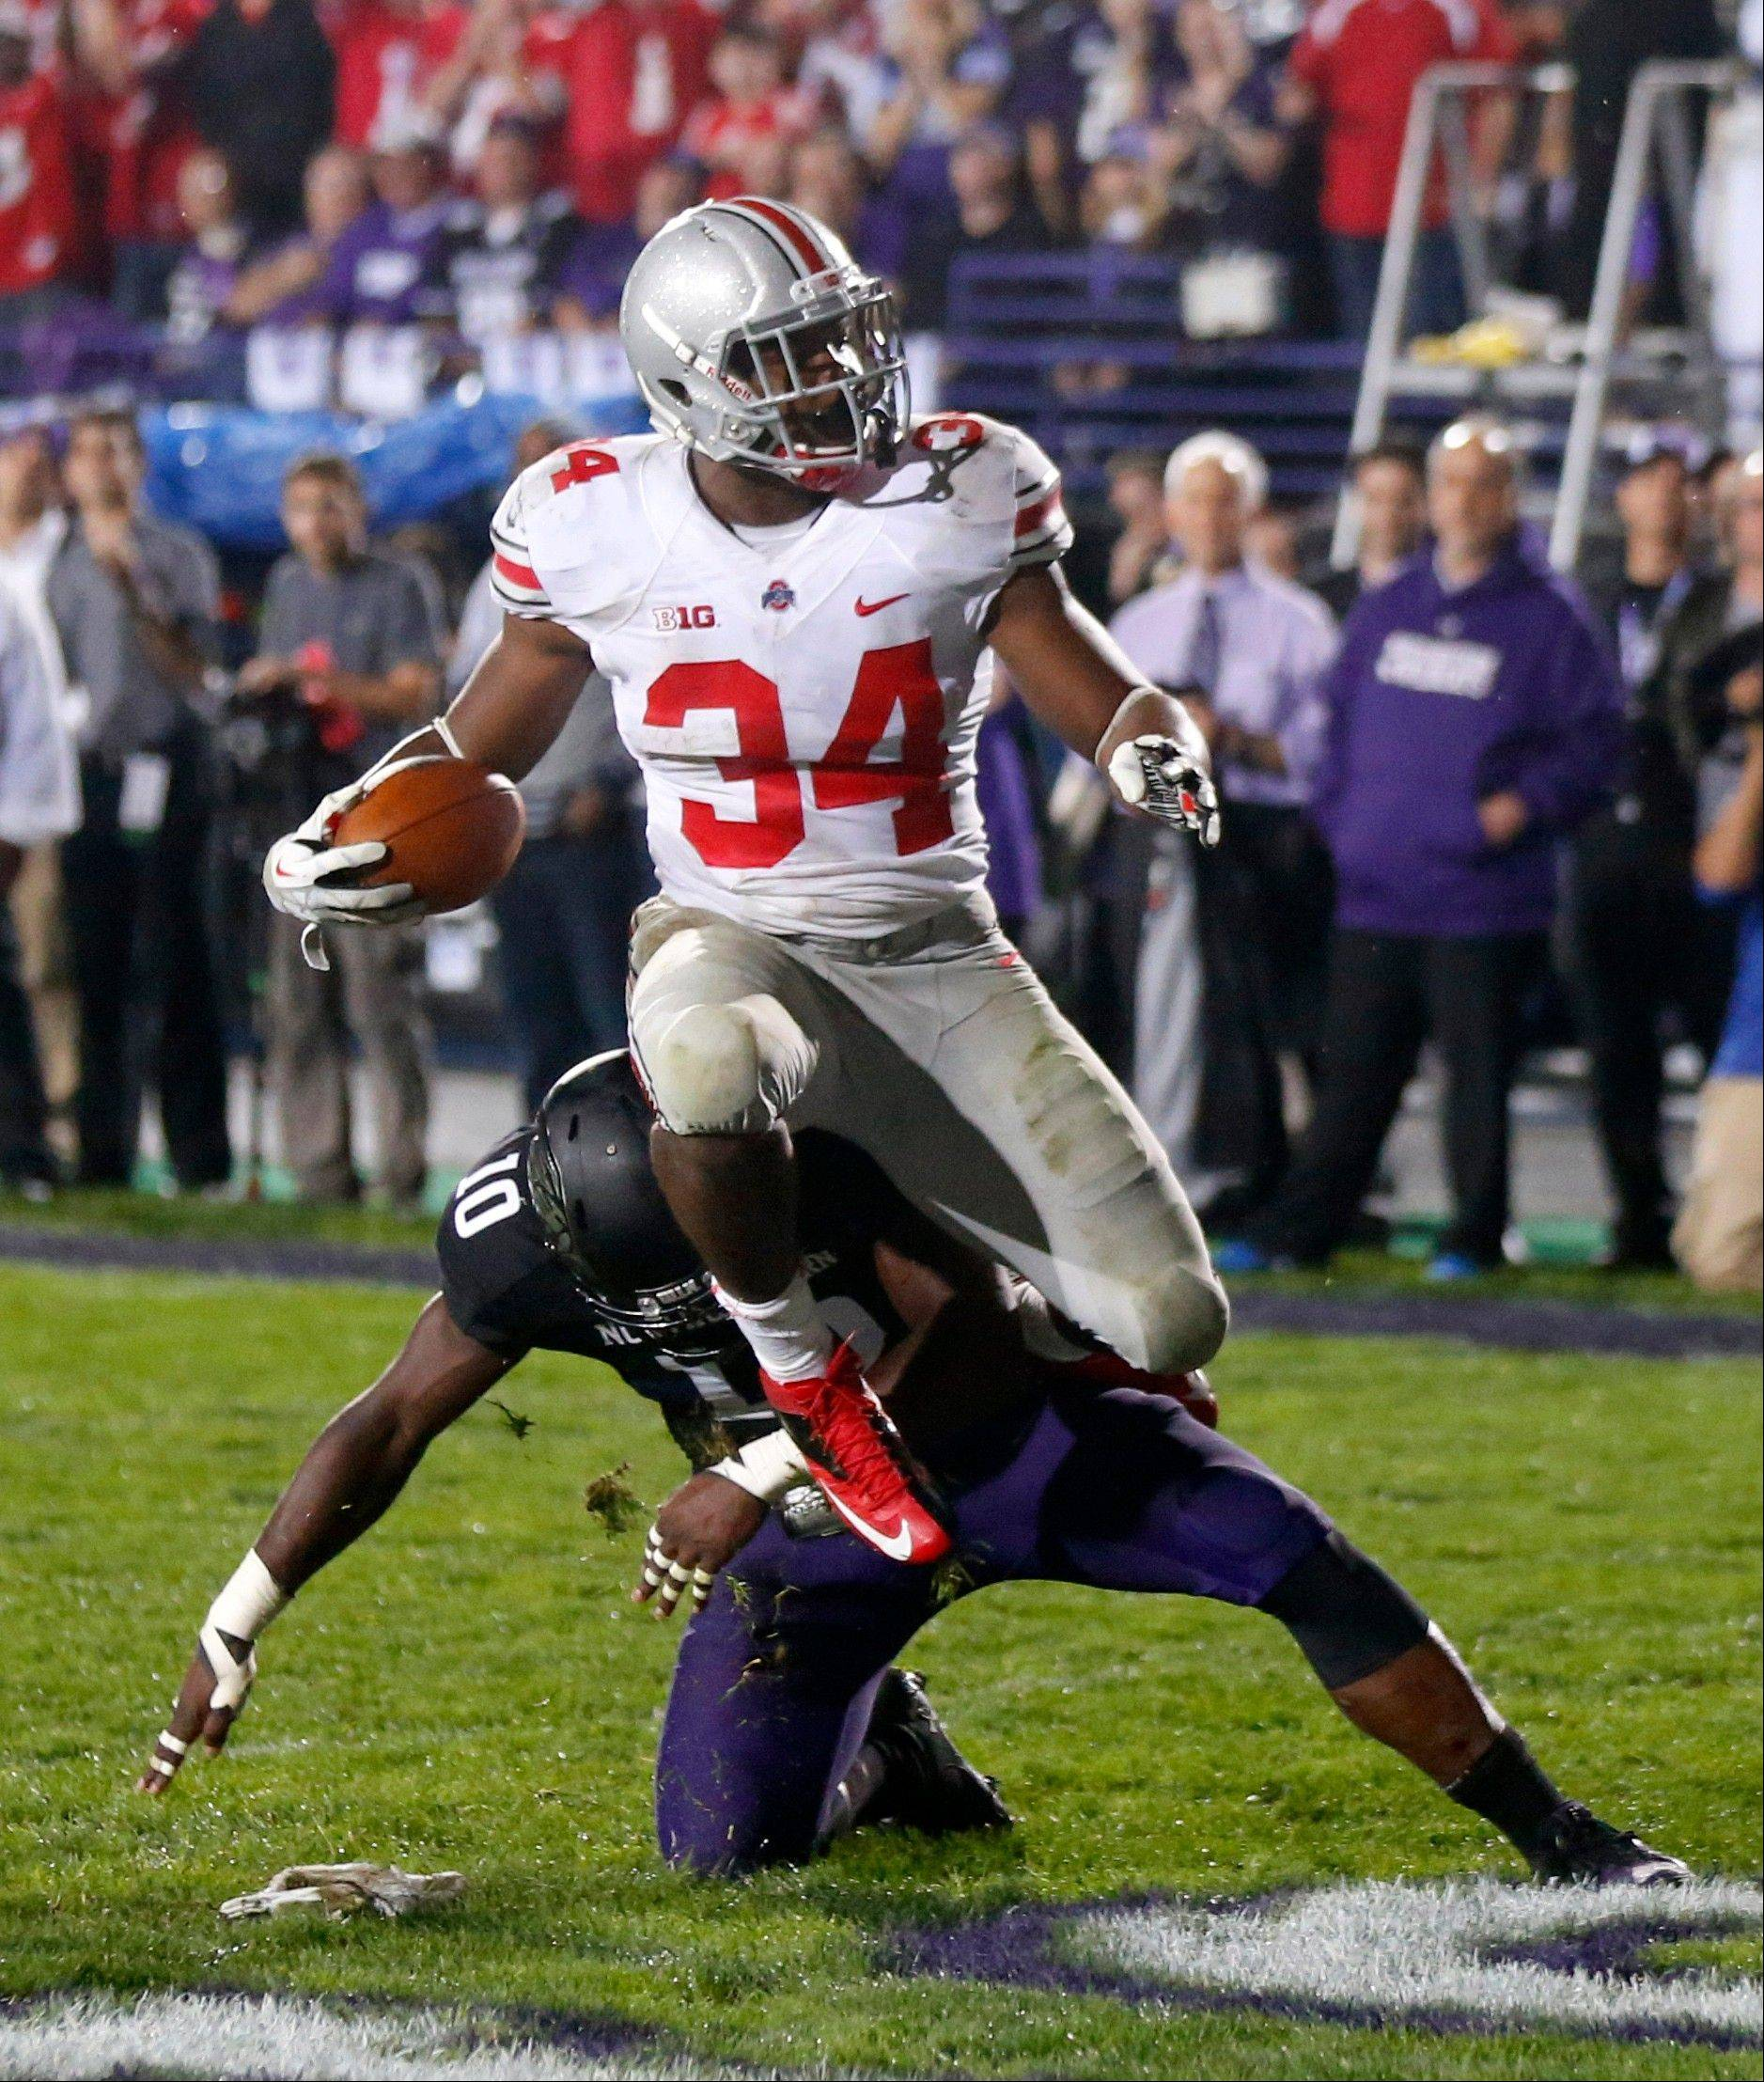 Ohio State running back Carlos Hyde, top, scores over Northwestern safety Traveon Henry during the second half of the Oct. 5 game in Evanston. Hyde has 294 yards rushing in just three games.